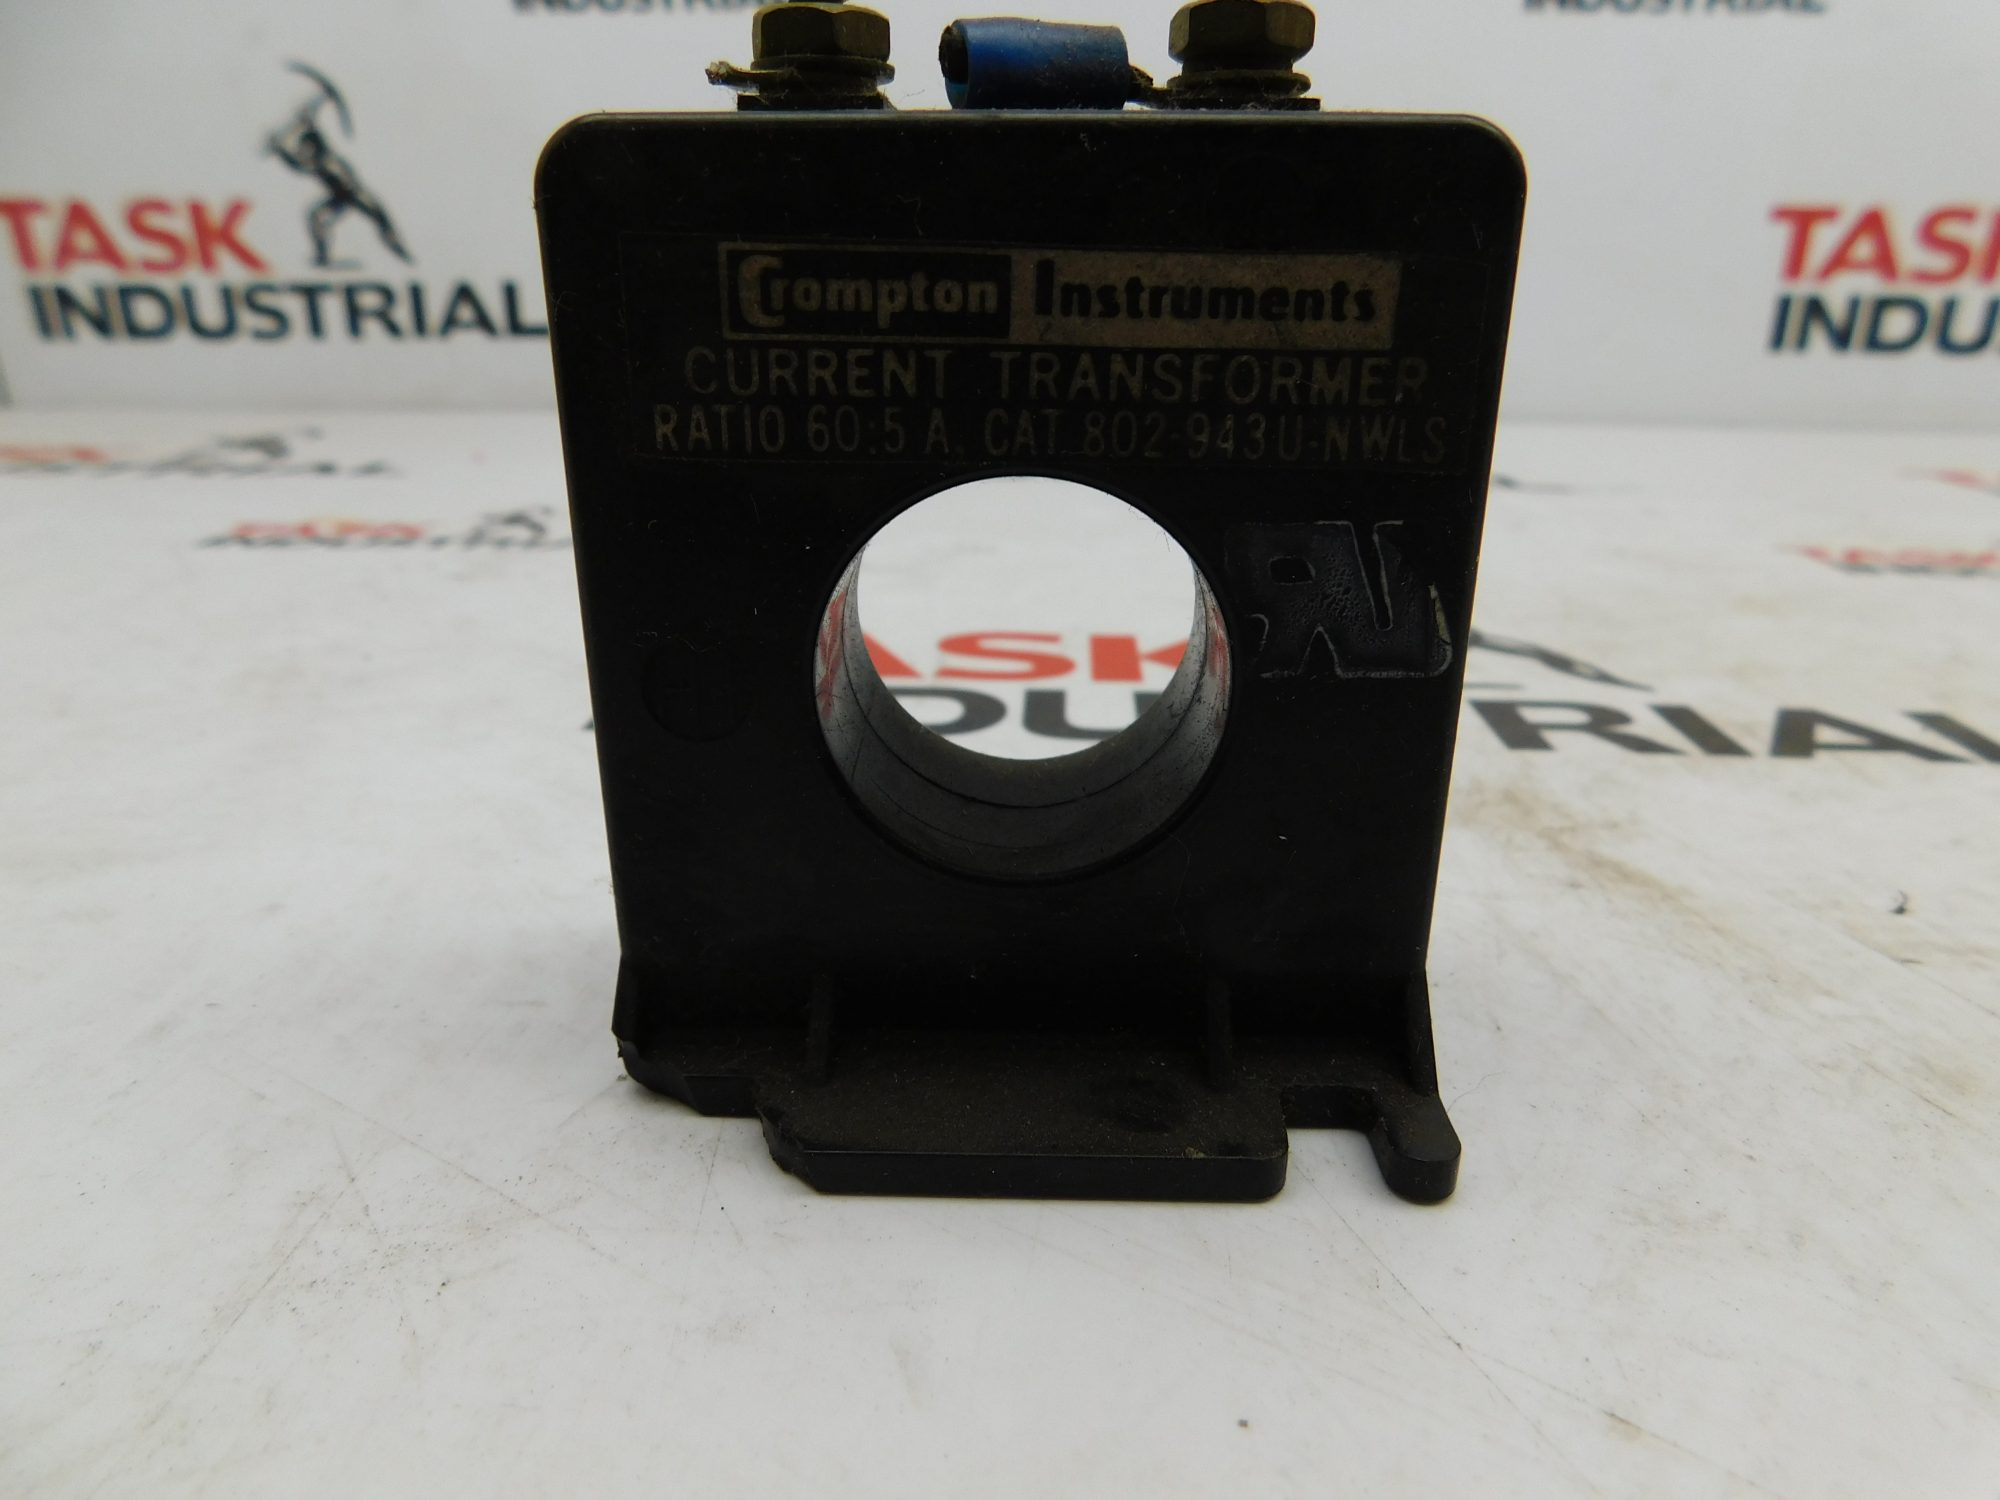 Crompton Instruments CAT No. 802-943U-NWLS Current Transformer Ratio 60:5